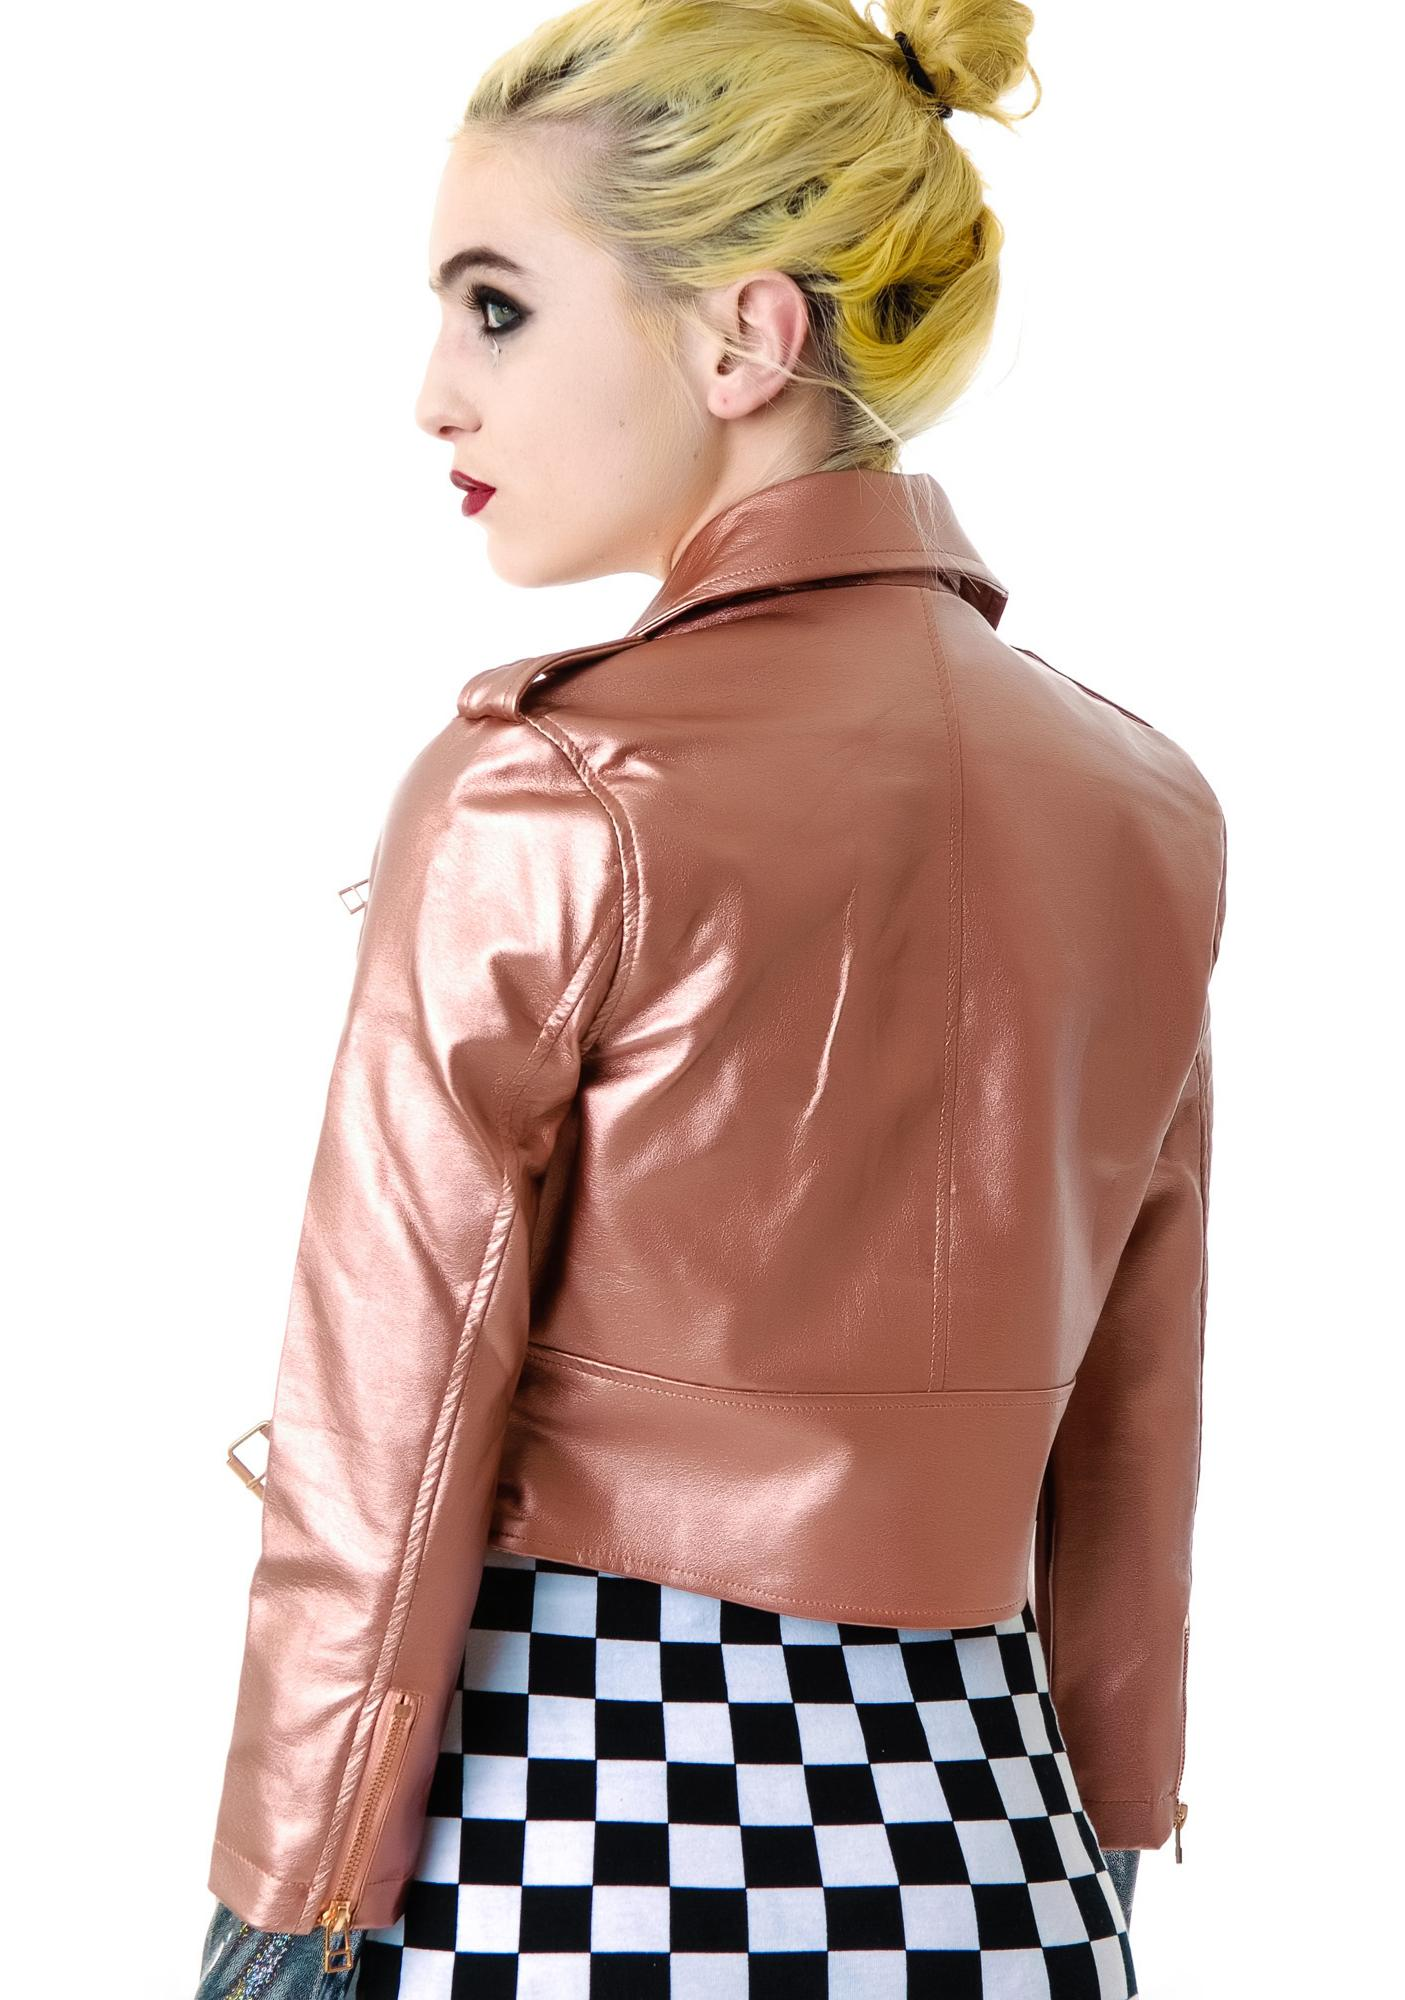 Lip Service Copper Vinyl Leather Moto Jacket